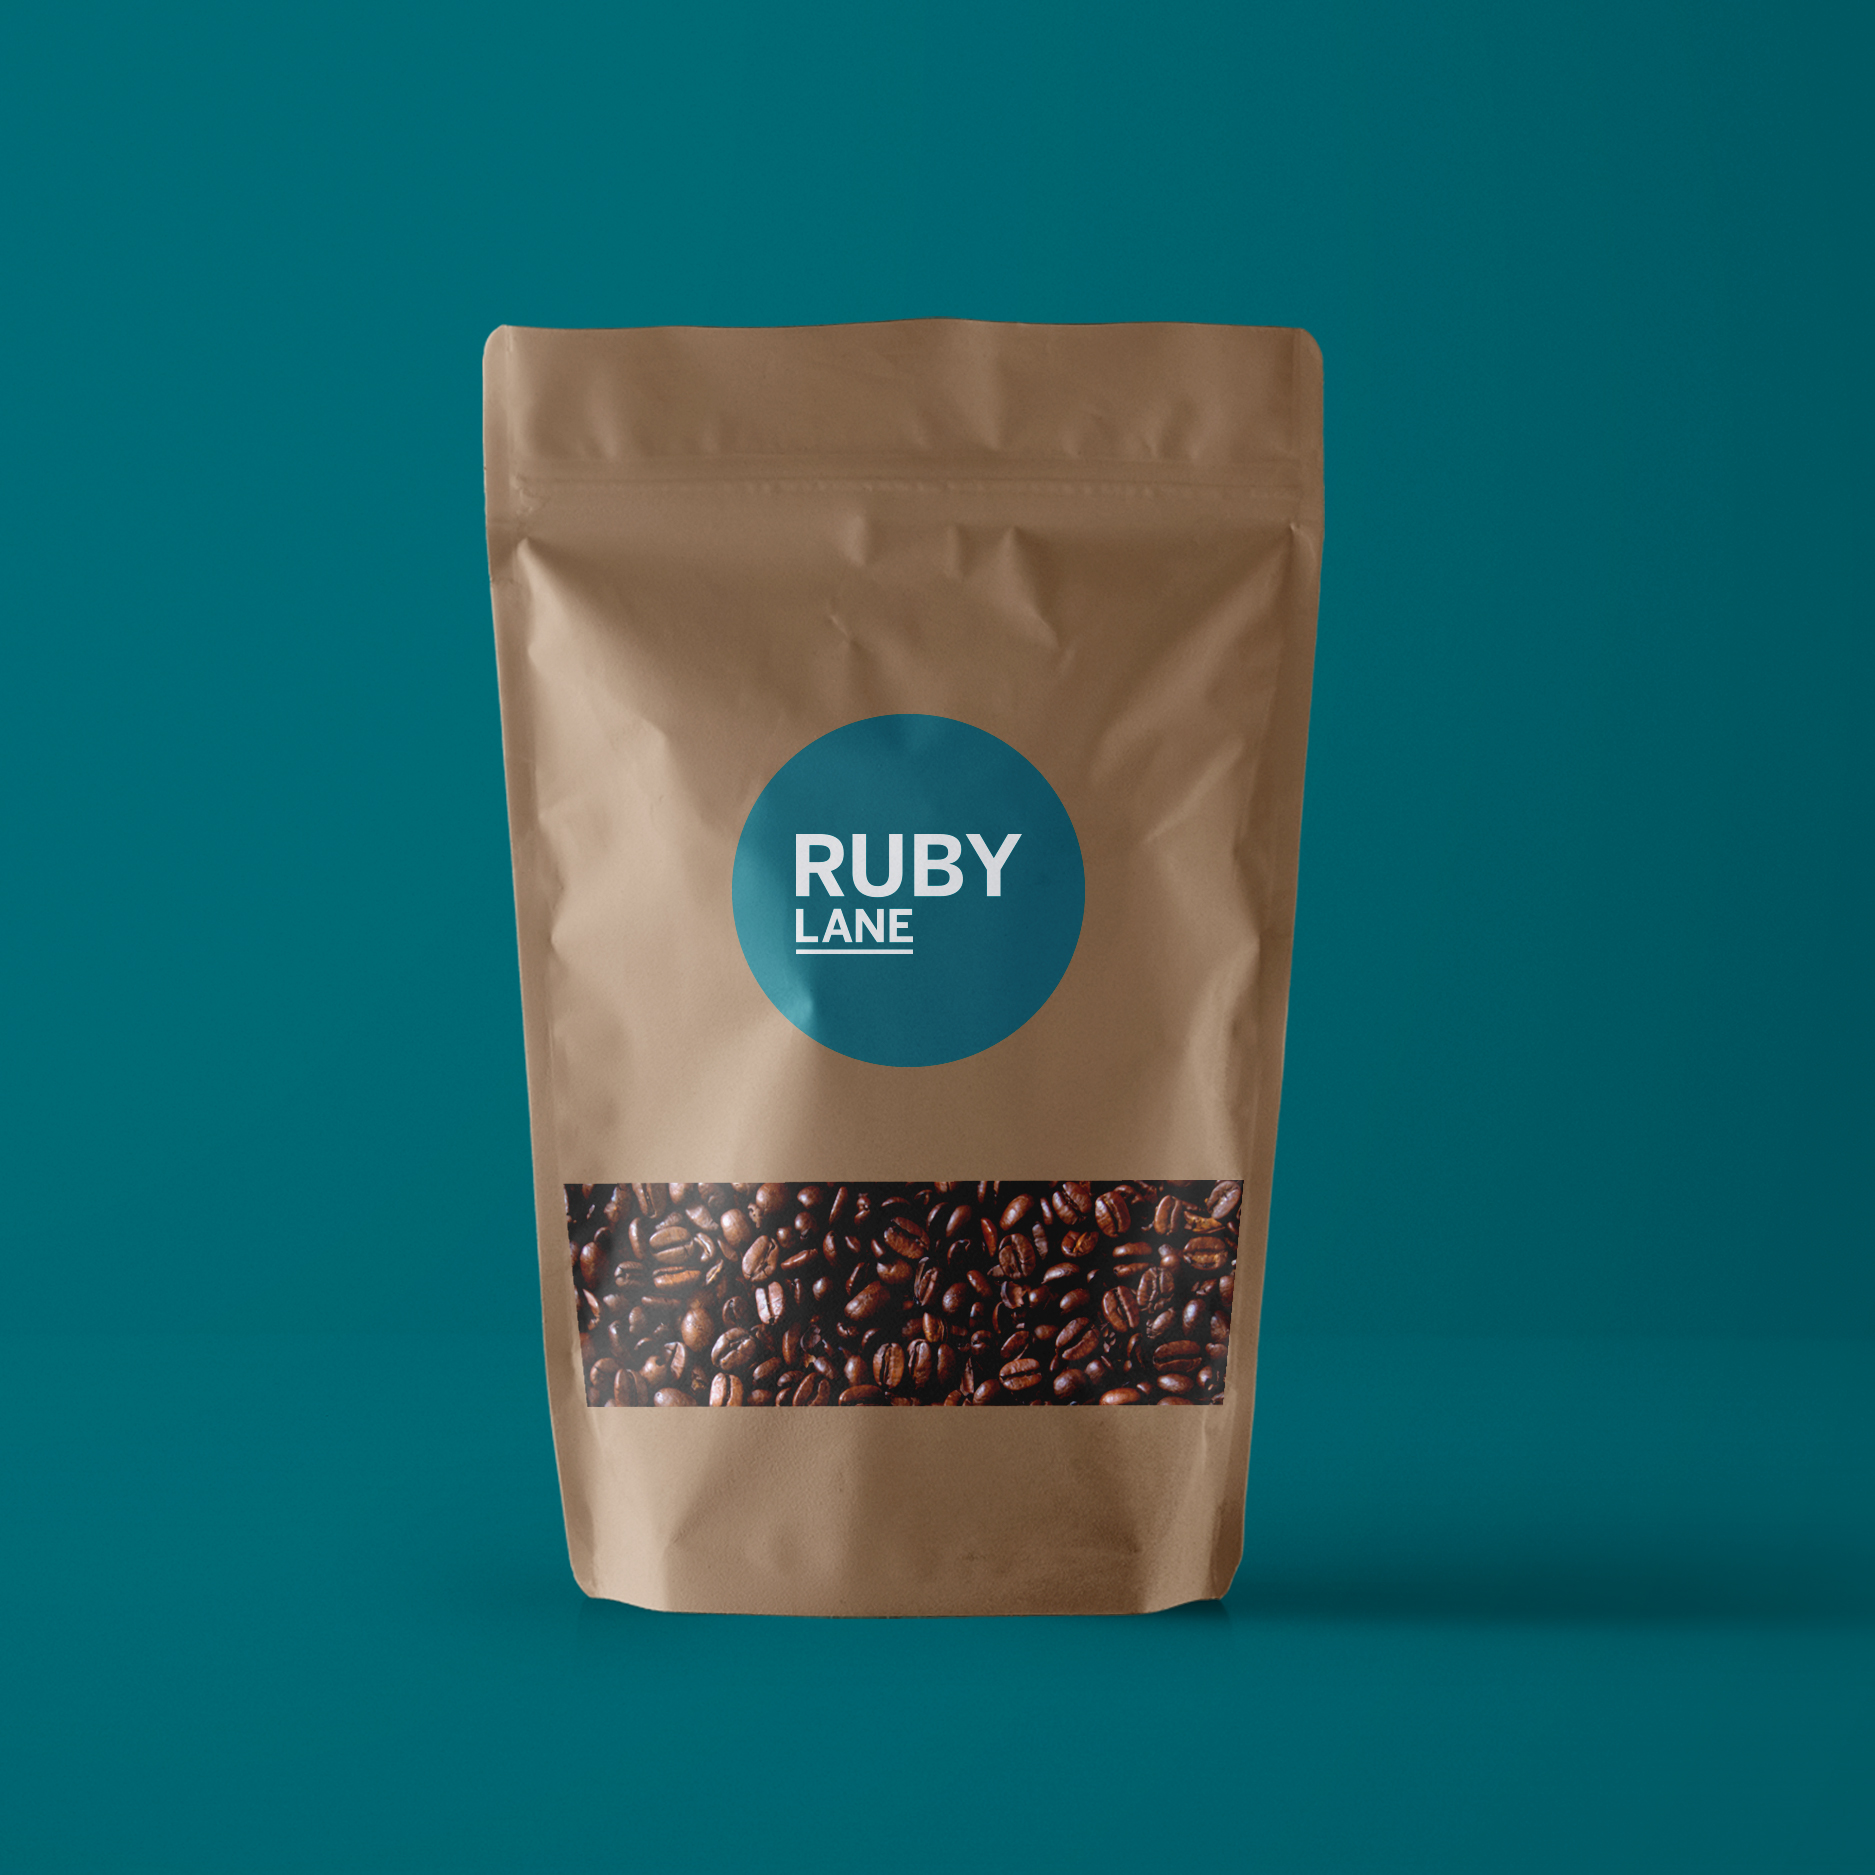 sydney-design-social-teal-ruby-lane-logo-sticker-coffee-brown-paper-bag-packaging